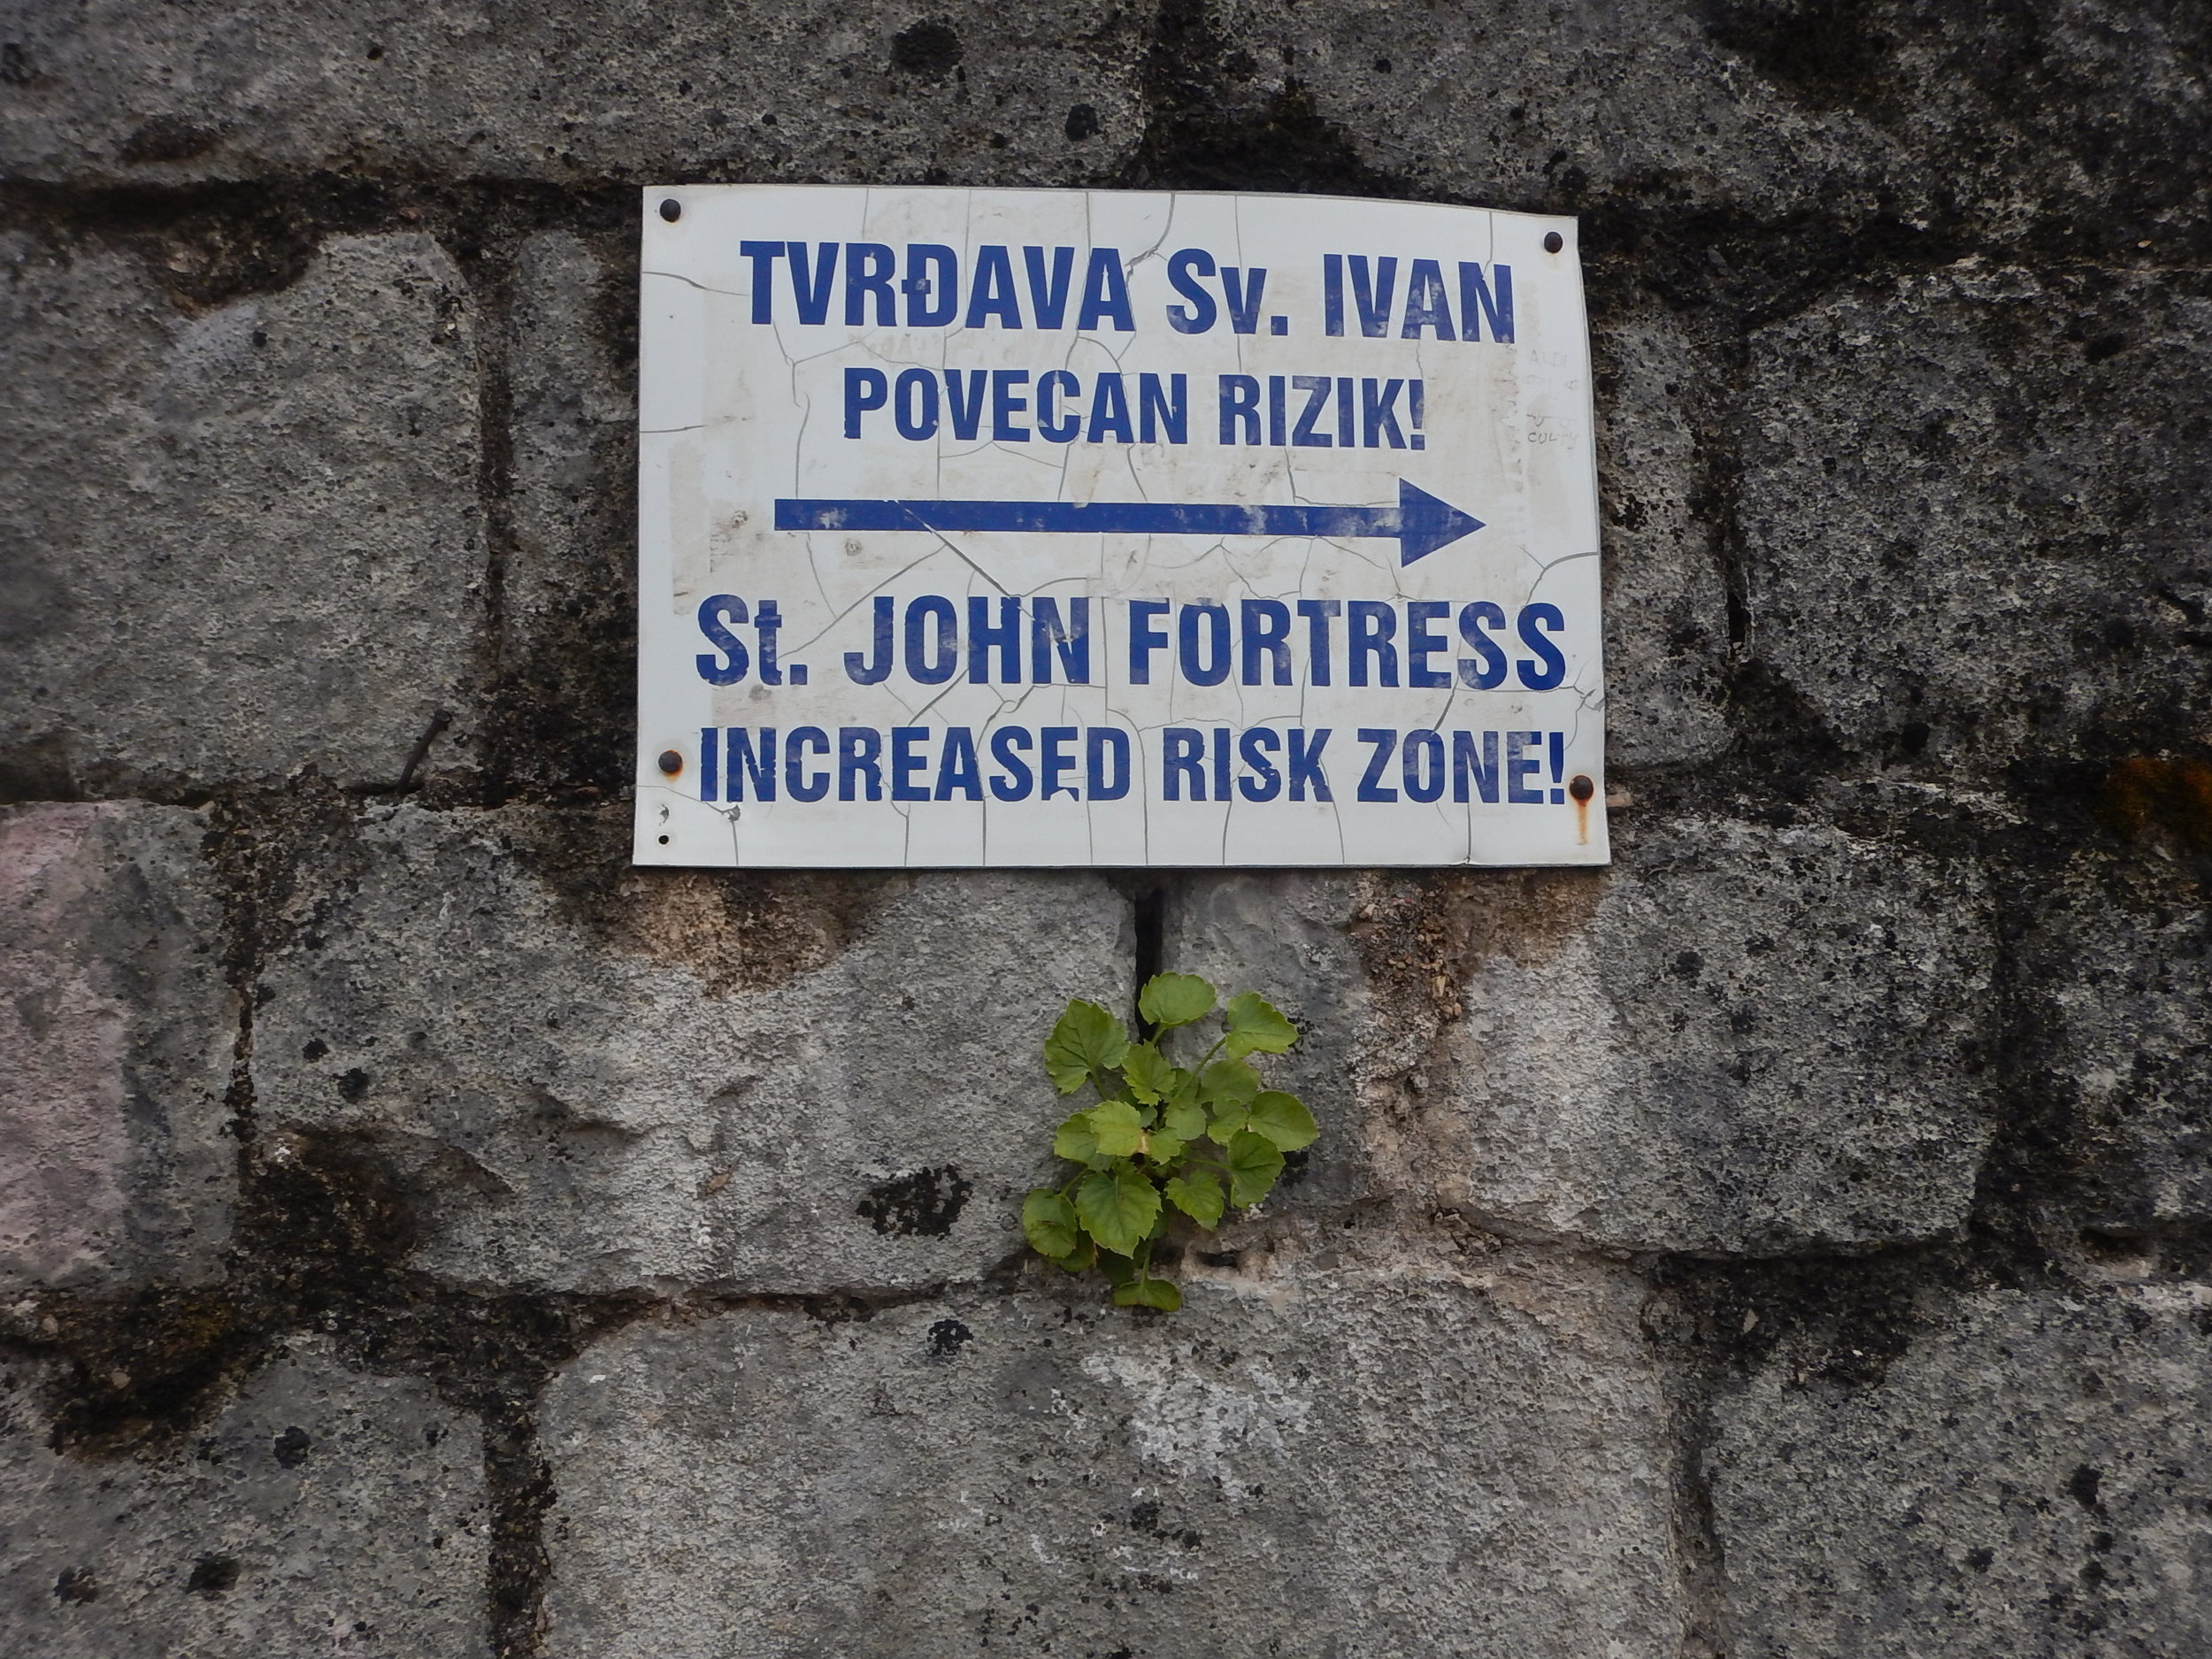 I didn't realise until I read this sign that Ivan, John and Giovanni are one and the same!